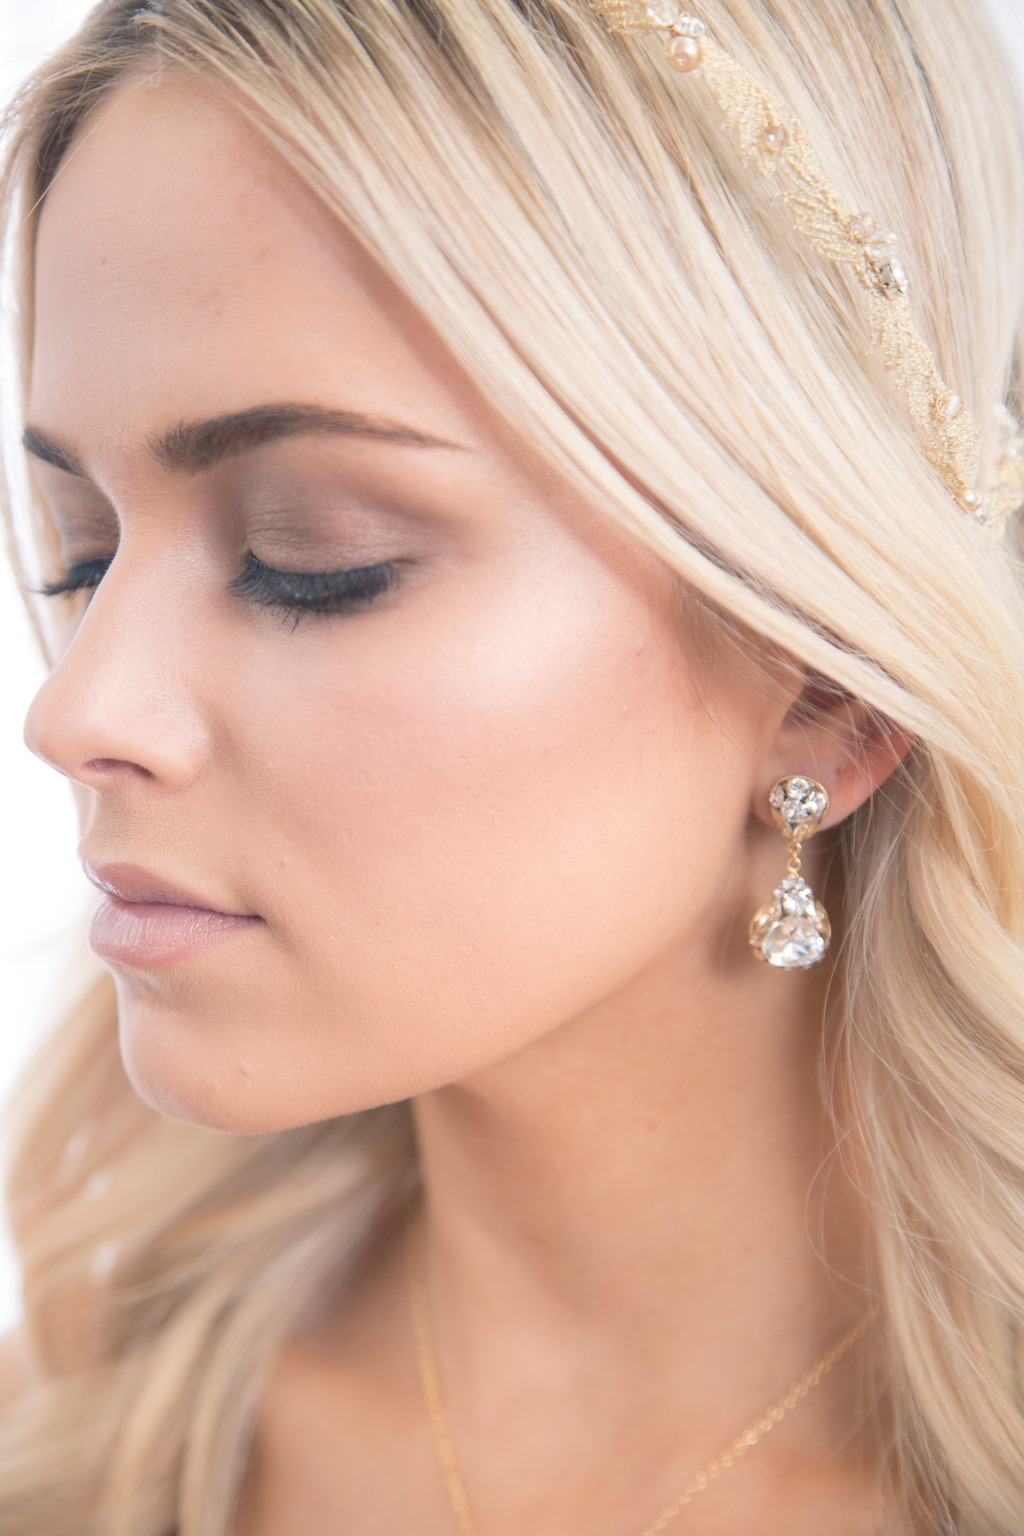 Looking for crystal bridal earring? Our crystal pave teardrop earrings you should not miss up. It is perfect for a modern glam bridal